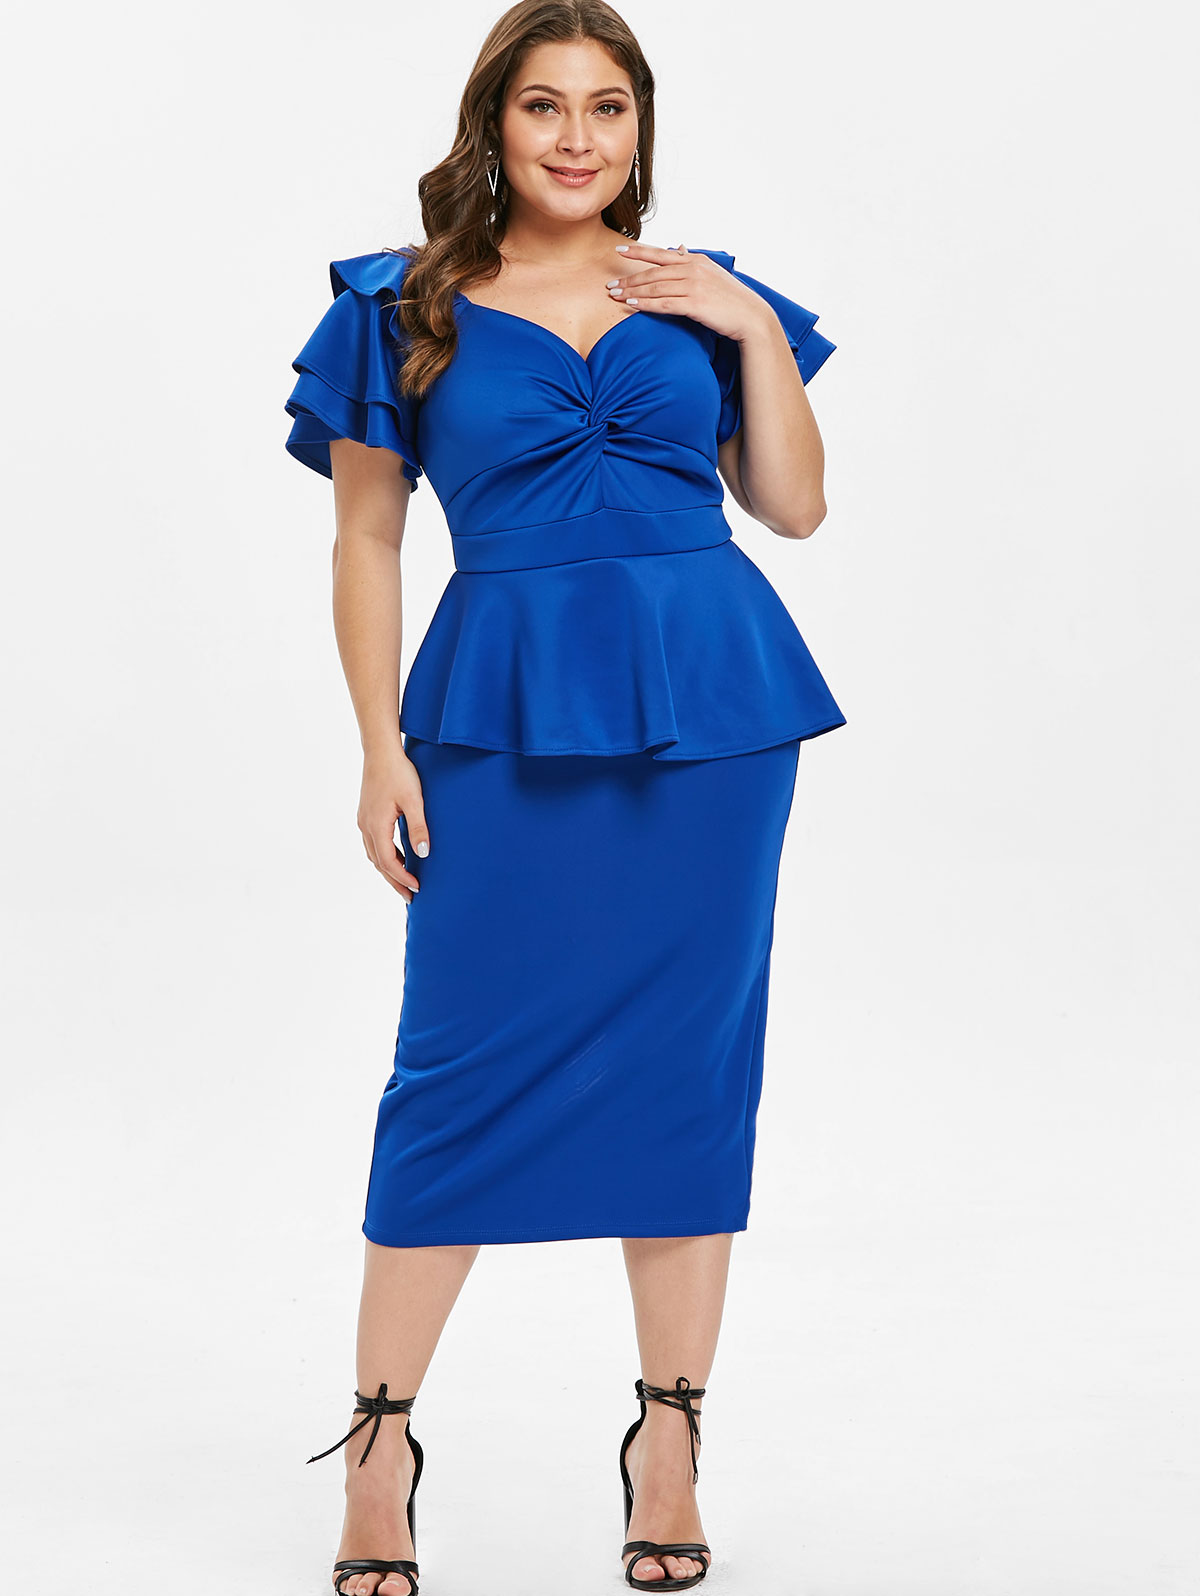 Silhouette Bodycon Dresses Length Mid-Calf Neckline Sweetheart Neck Sleeve  Length Short Sleeves Pattern Type Solid Color With Belt No 23b2d85a08f6